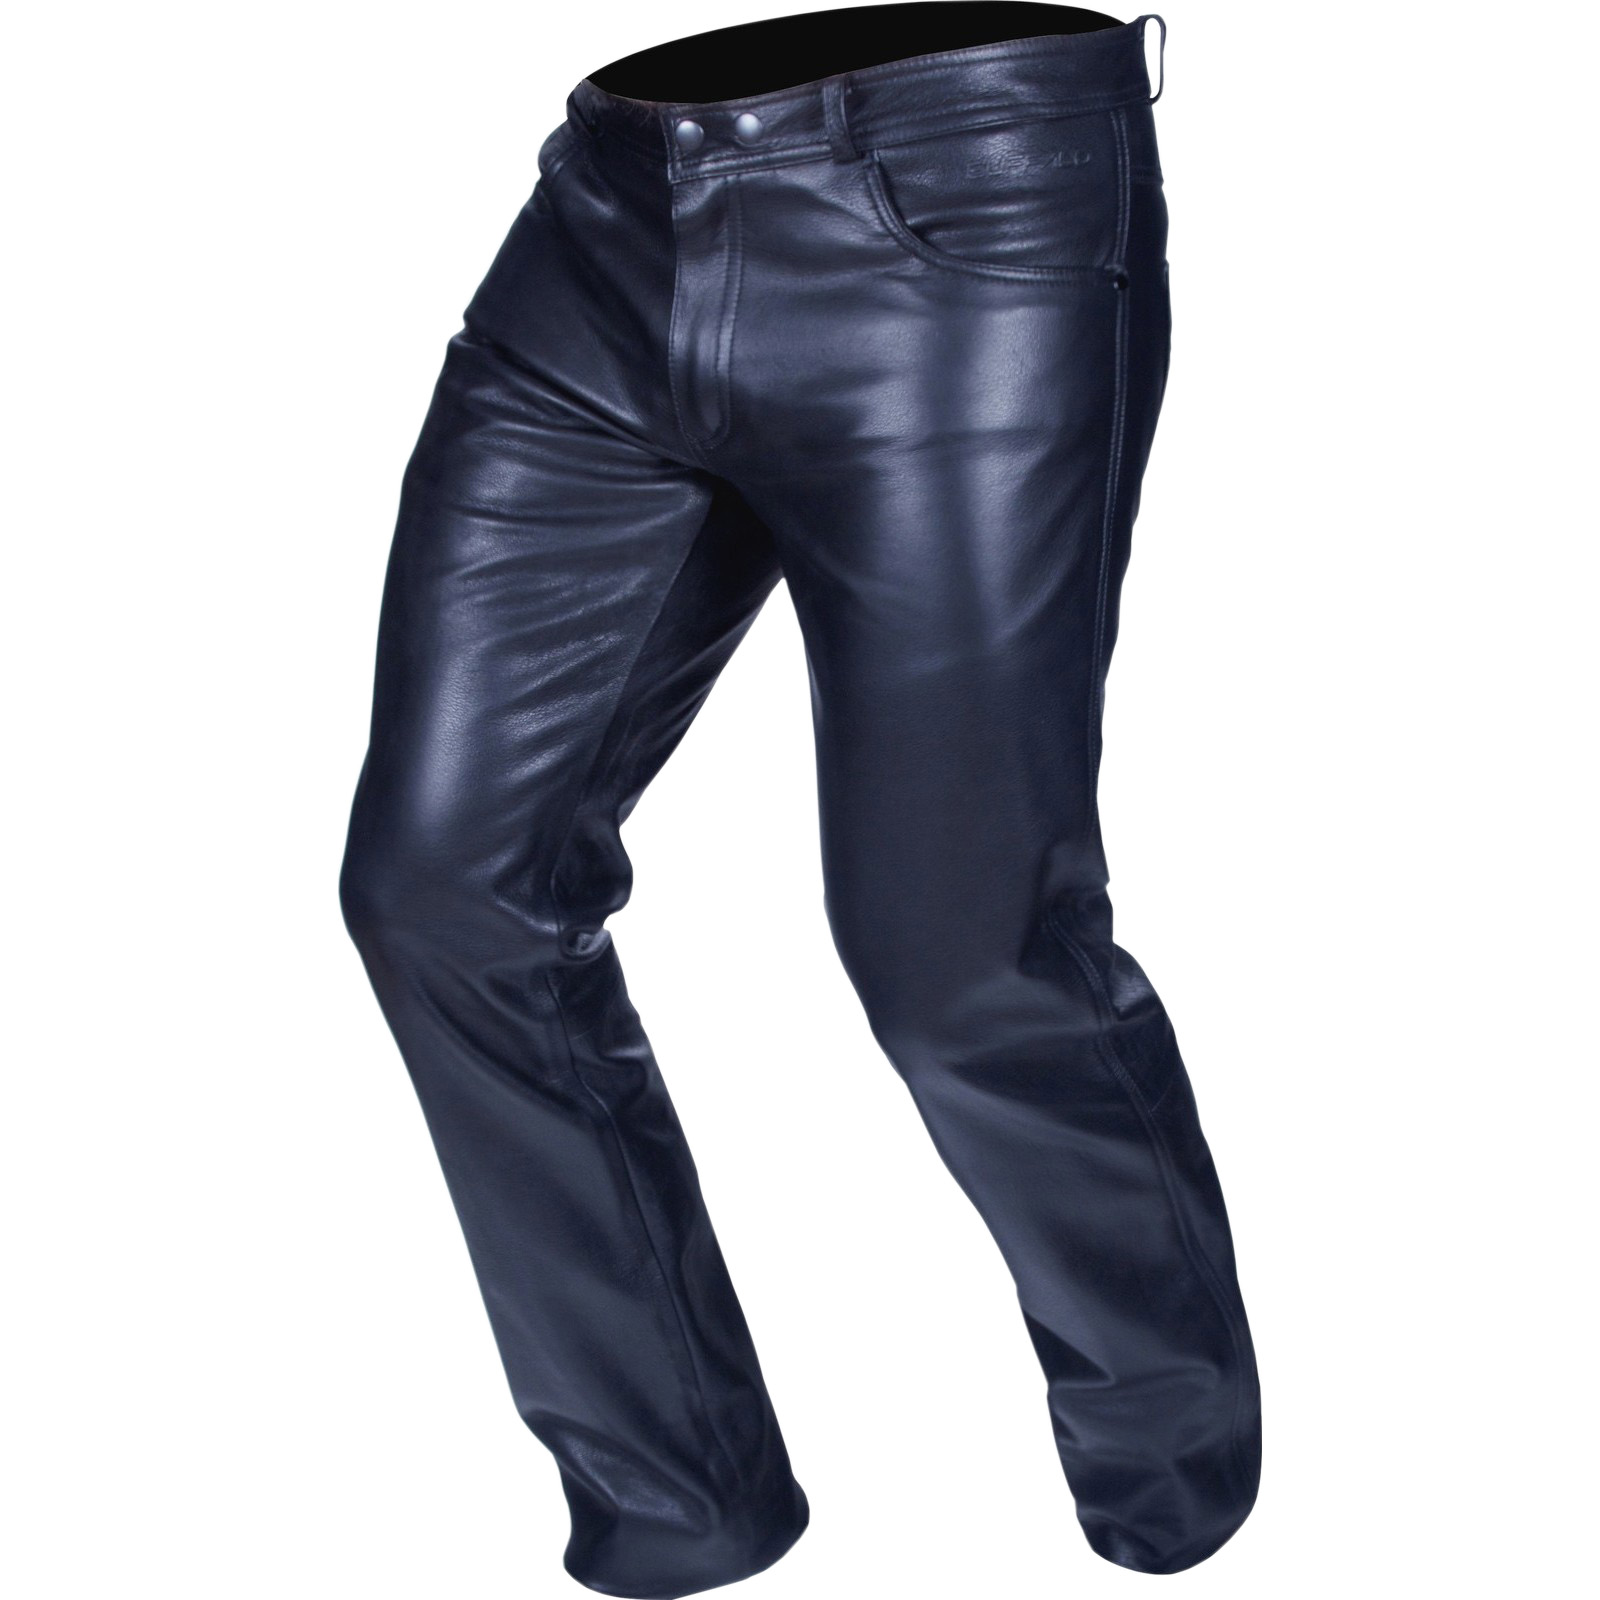 Womens Leather Motorcycle Trousers